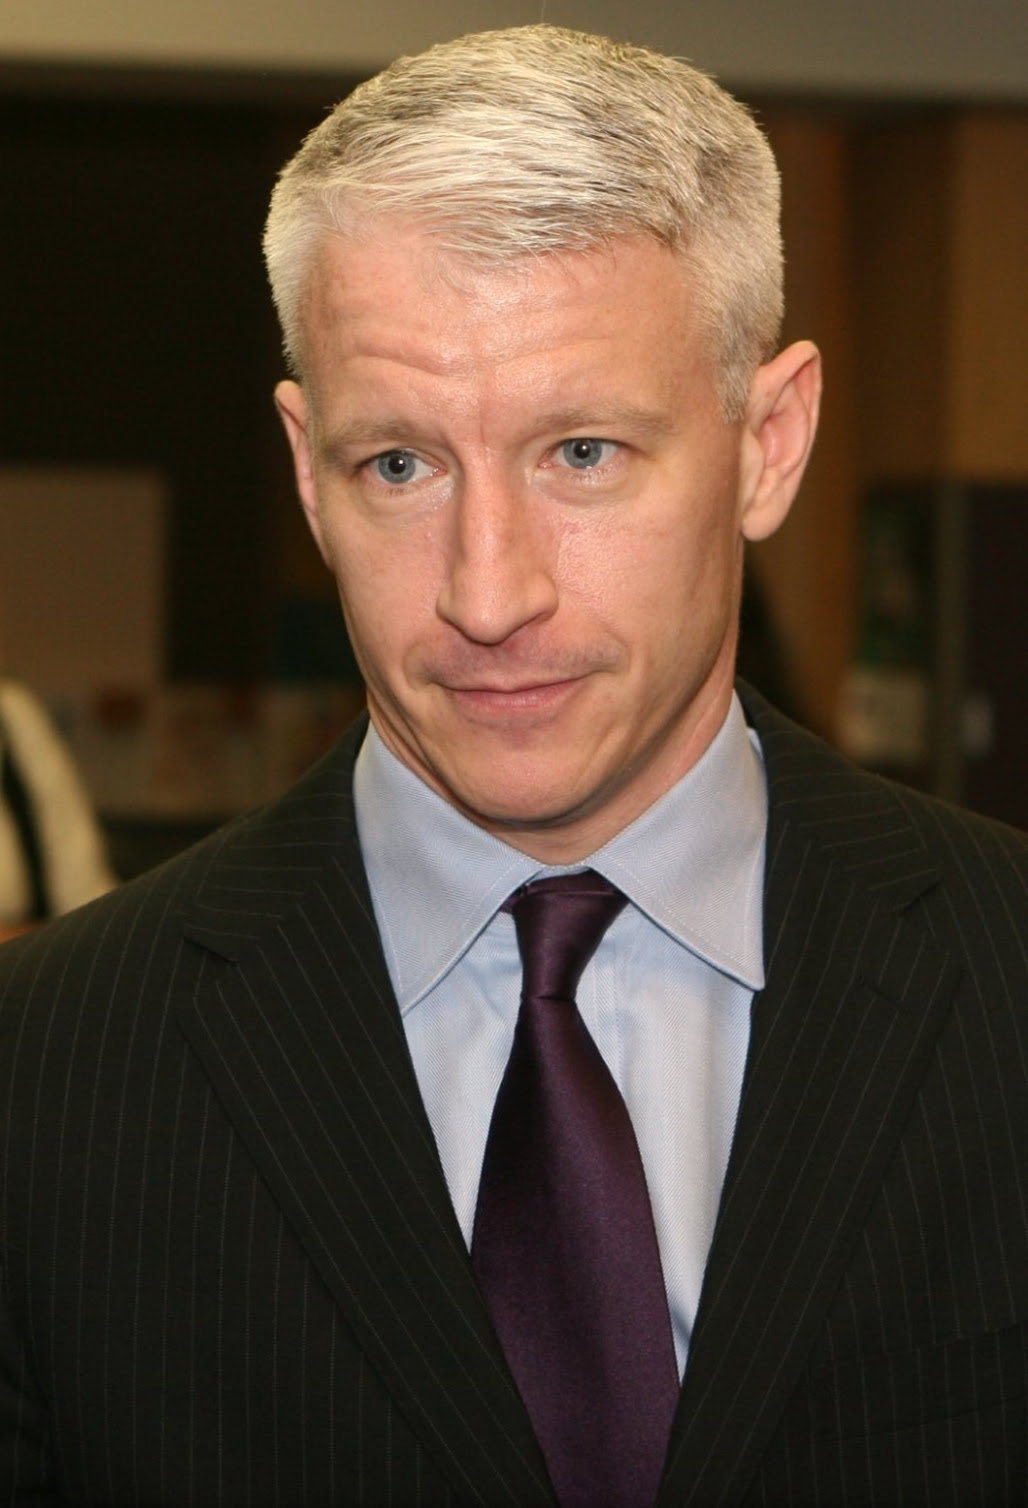 http://upload.wikimedia.org/wikipedia/commons/1/15/Anderson_Cooper.jpg